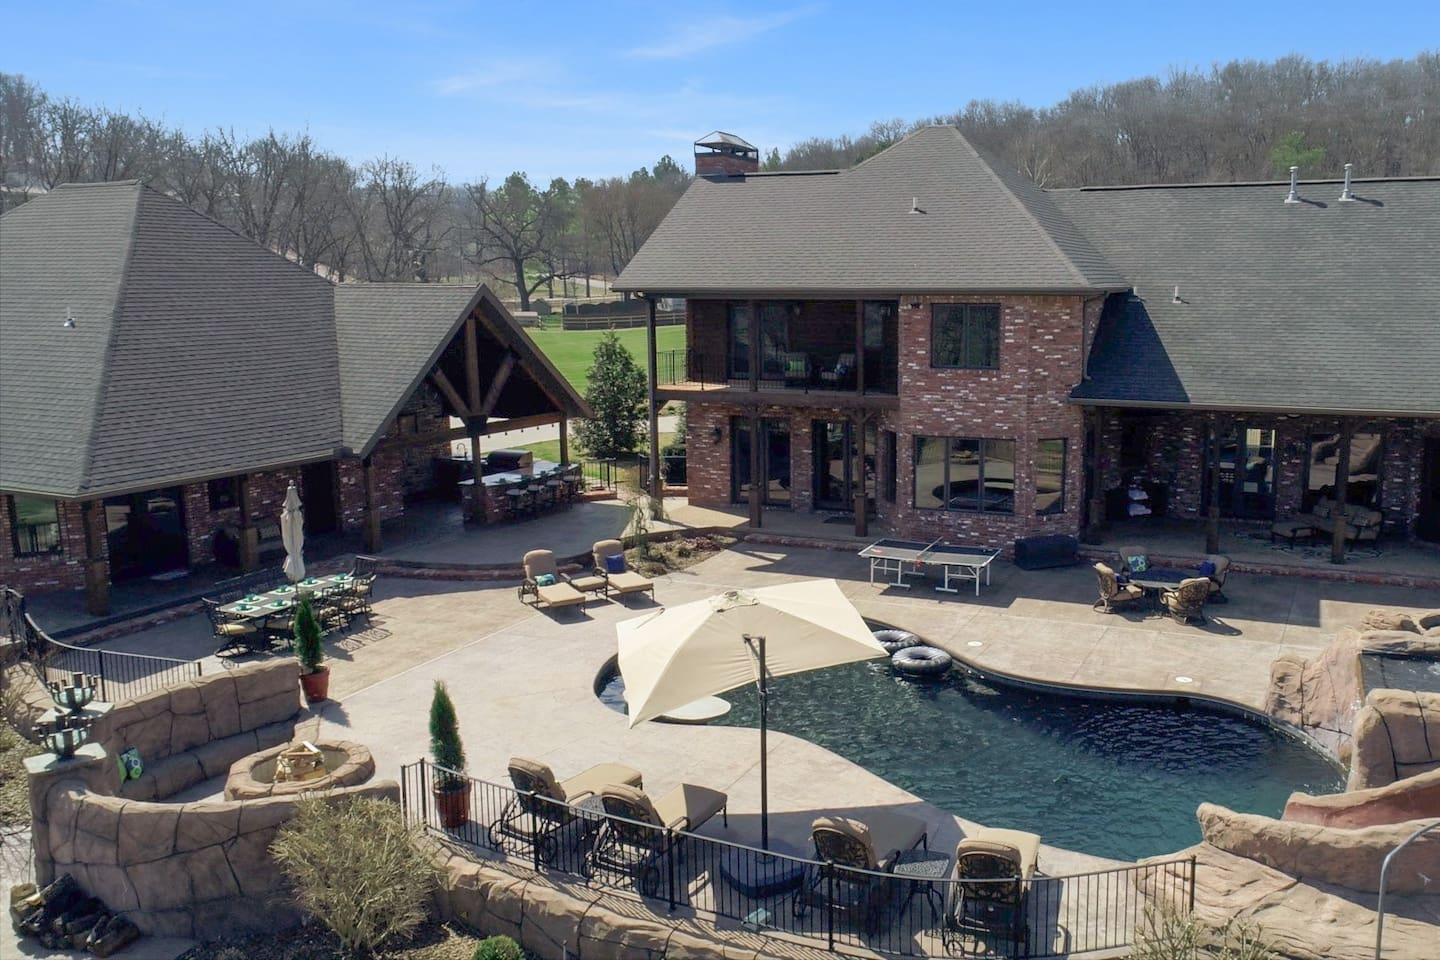 Guest House (left) has full access to Pool, Hot Tub, Fire Pit, Bar and Grill